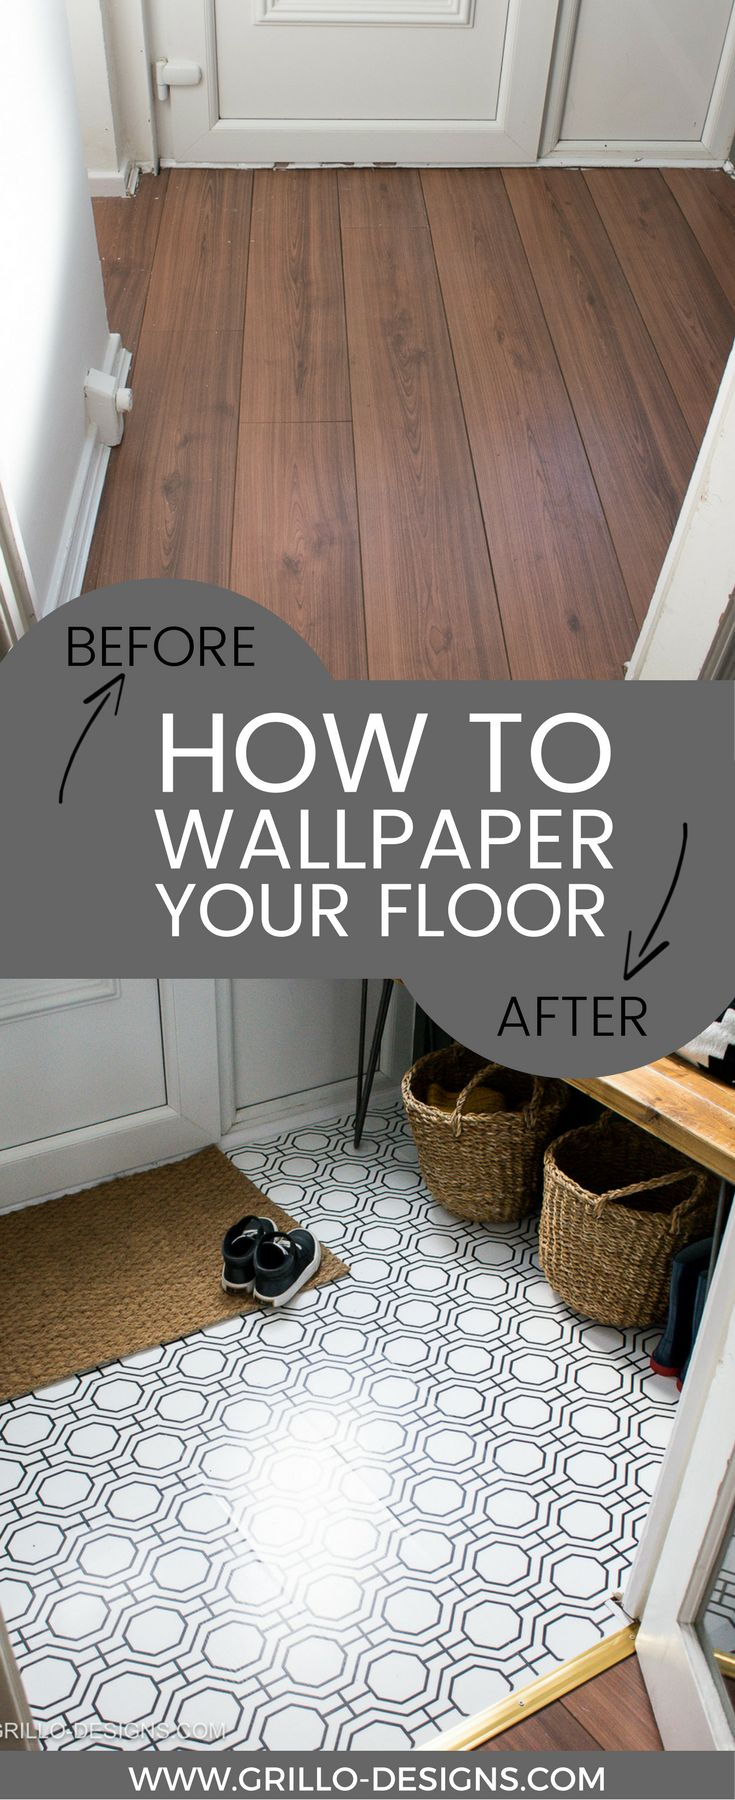 Everything you need to know about how to wallpaper a floor - a laminate floor to be precsie. This is a renter-friendly option using contact paper (fablon)